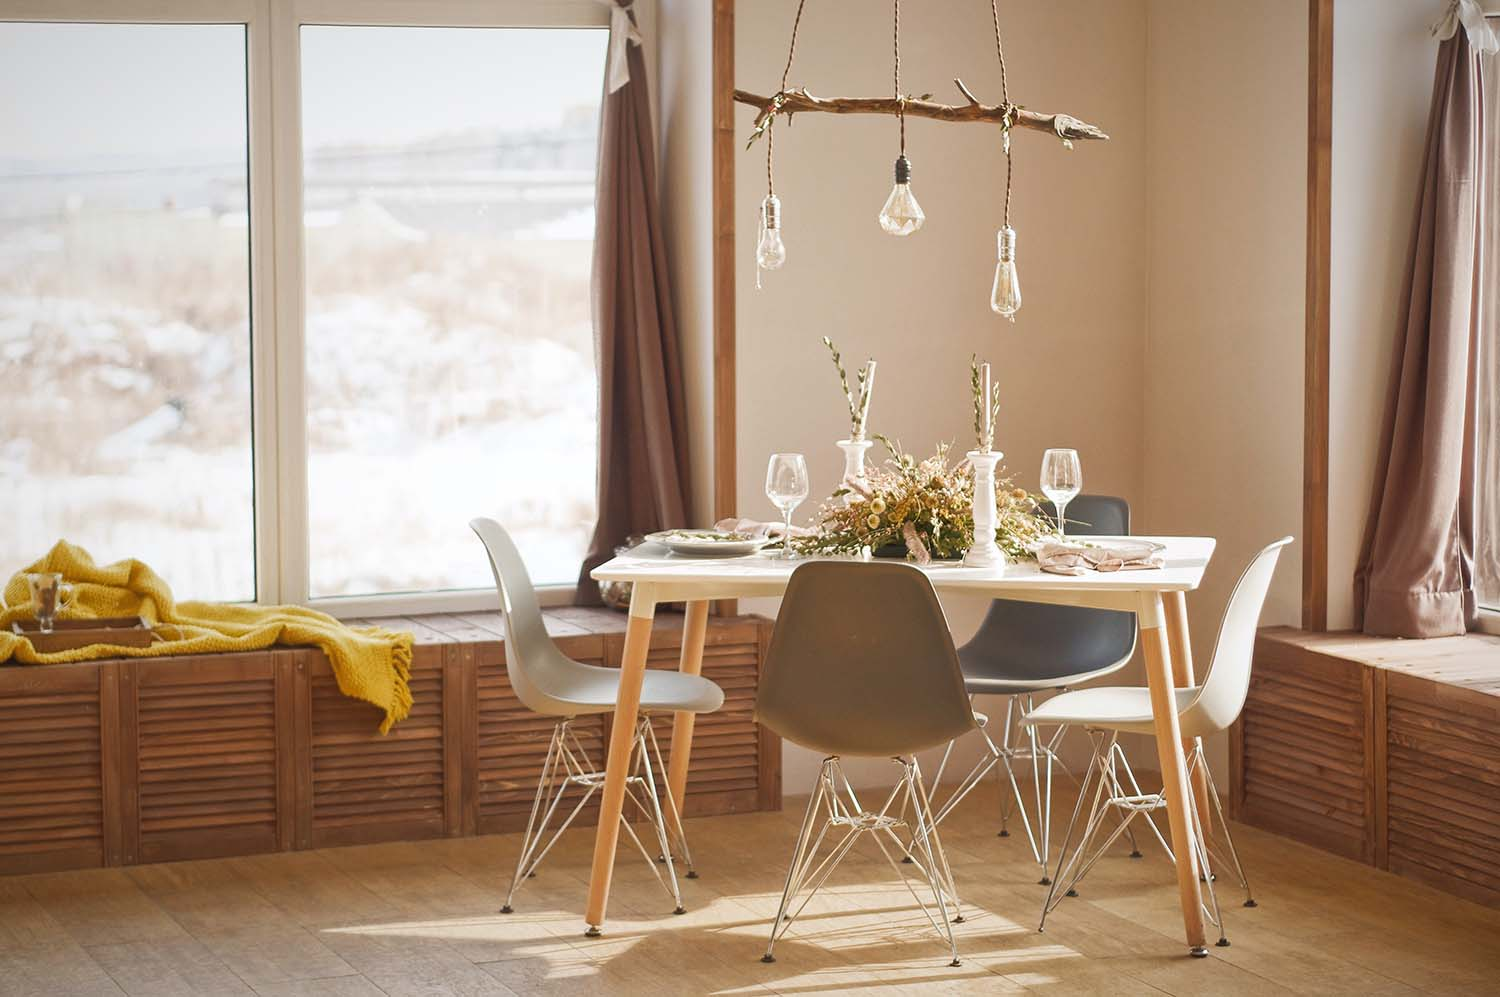 Furnishing Ideas for a 21st Century Style